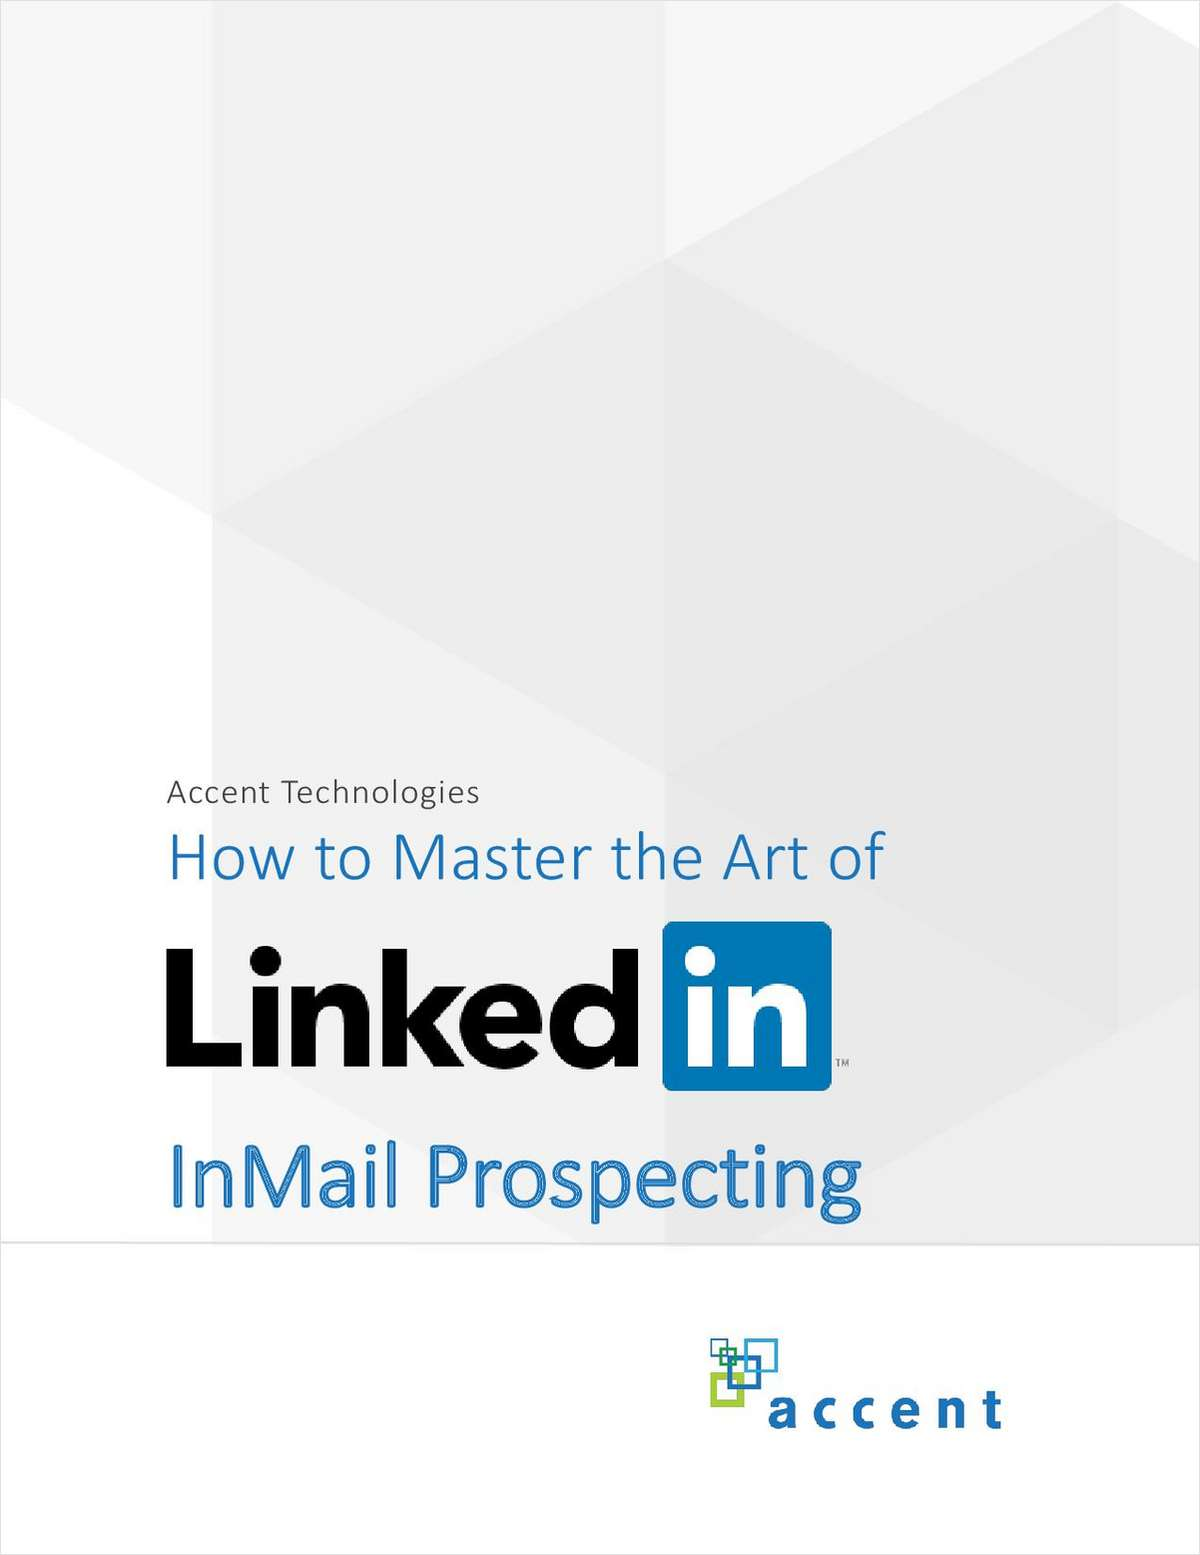 How to Master the Art of LinkedIn InMail Prospecting